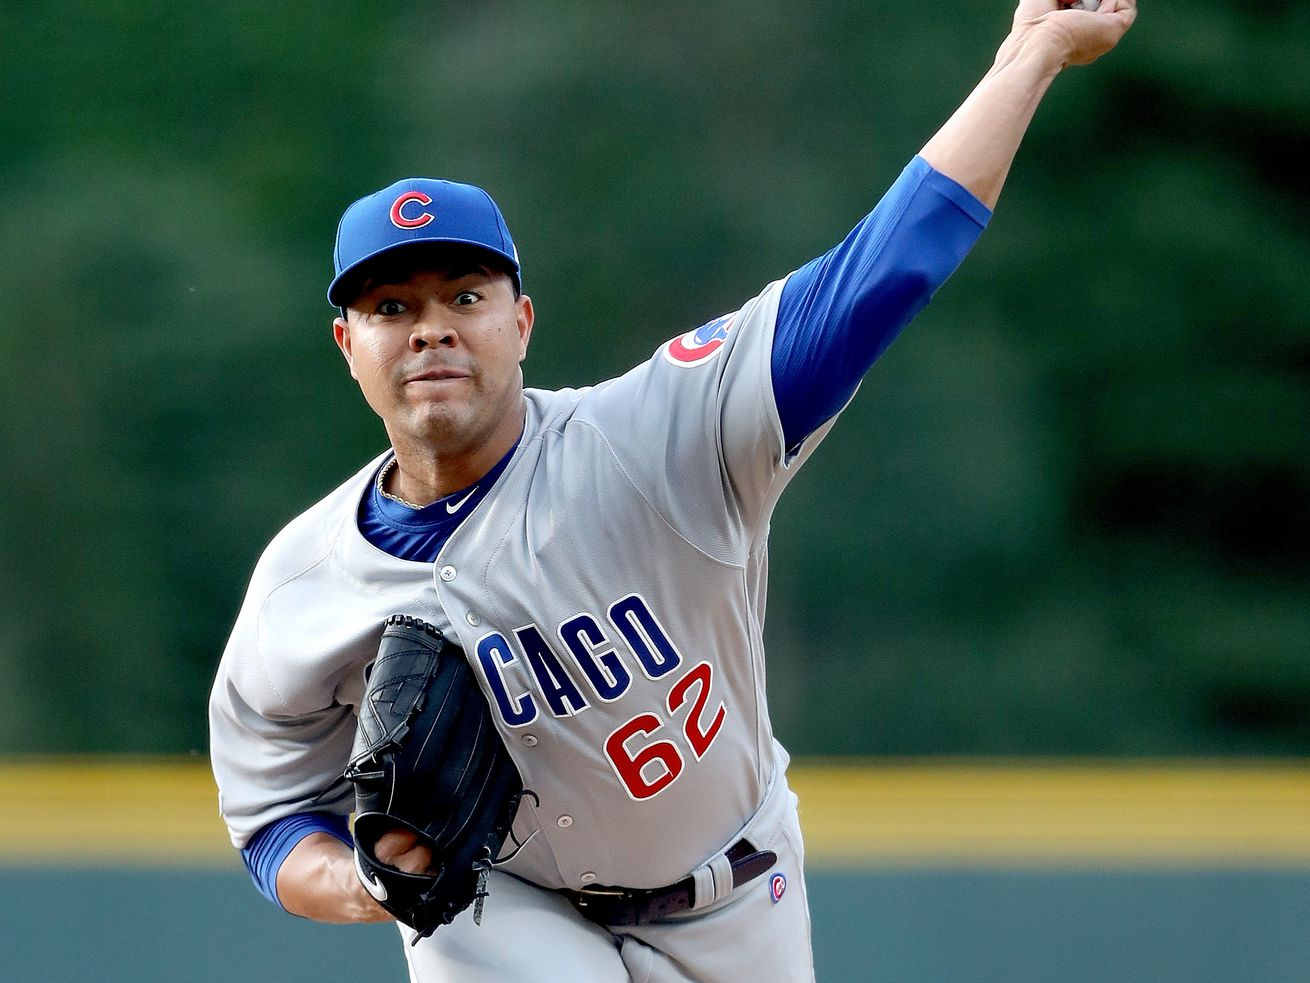 Jose Quintana couldn't pitch out of the fifth inning of the Cubs' 10-1 loss to the Rockies on Tuesday night.